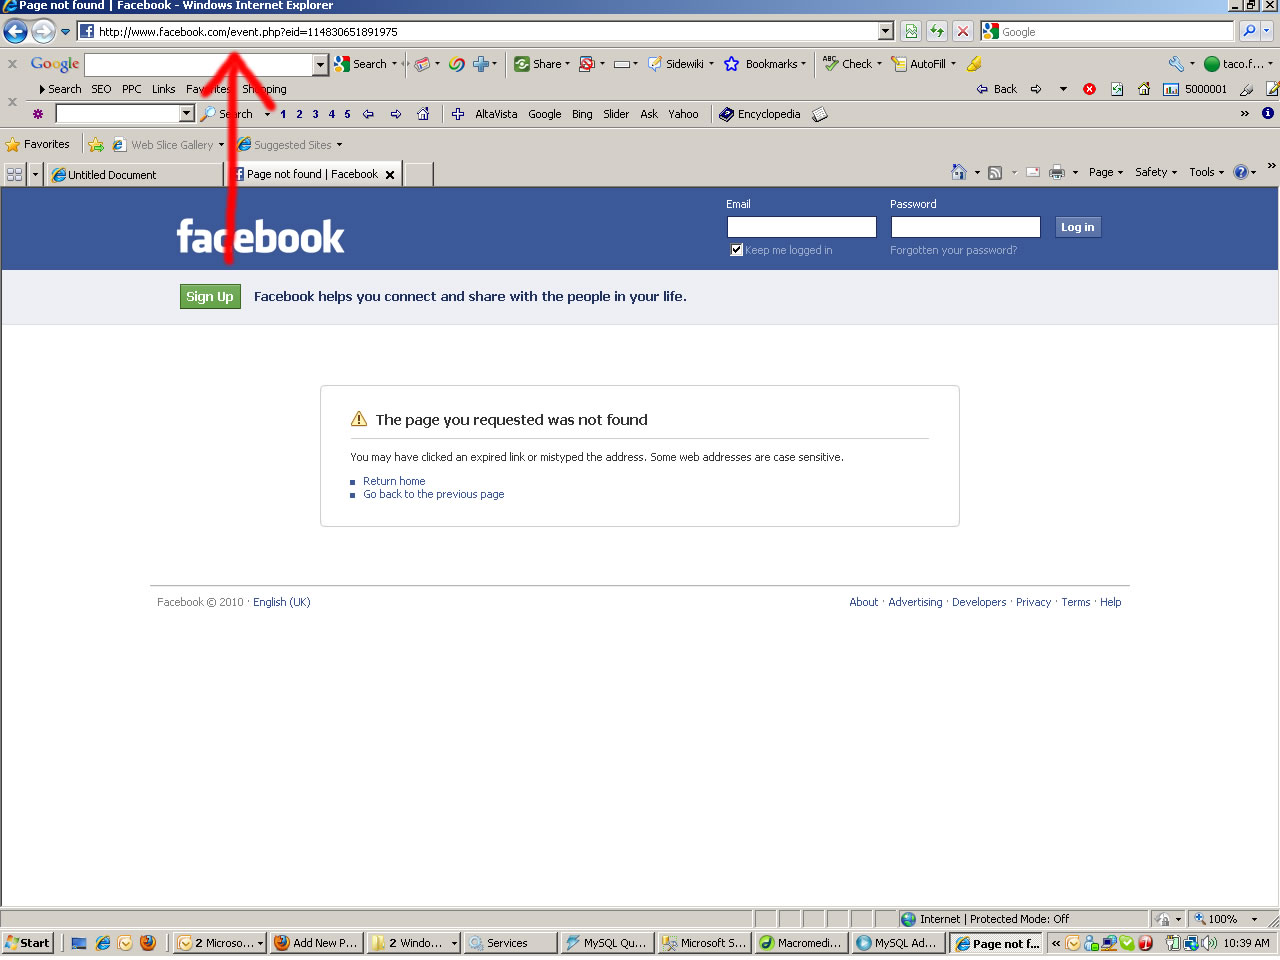 Facebook event same url but logged out